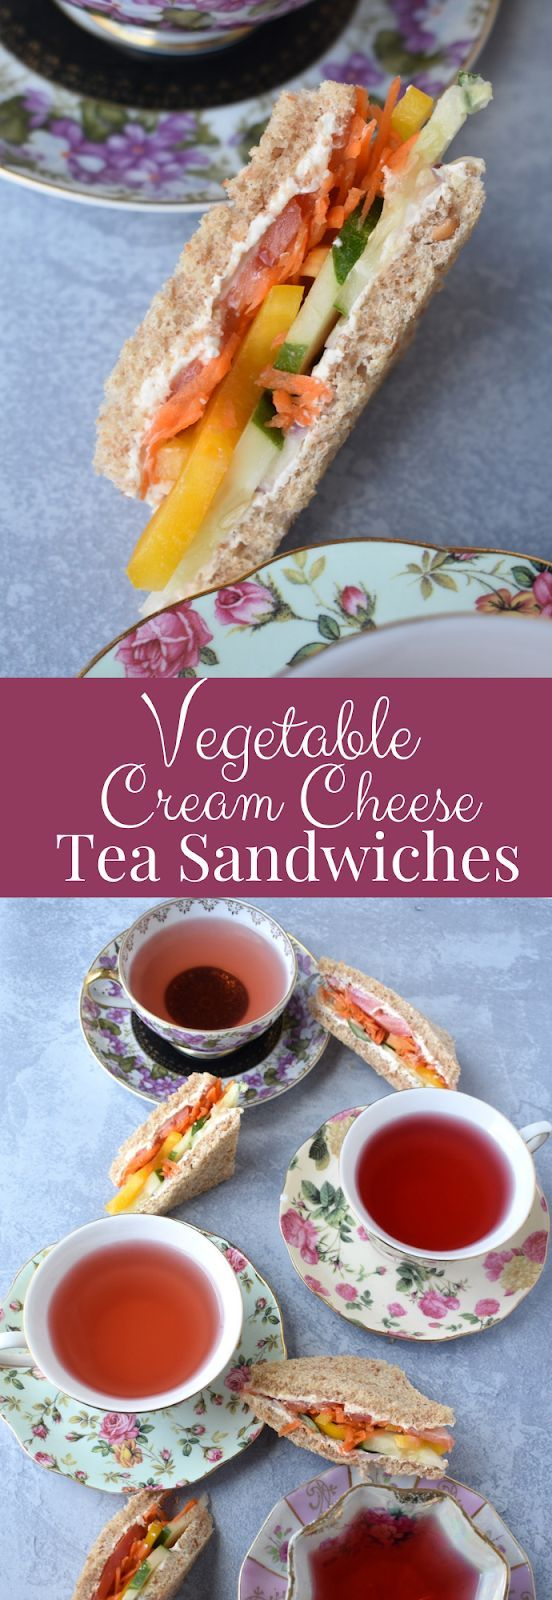 Vegetable Cream Cheese Tea Sandwiches Vegetable Cream Cheese Tea Sandwiches makes the perfect tea party snack with a mix of rainbow vegetables and veggie cream cheese on...